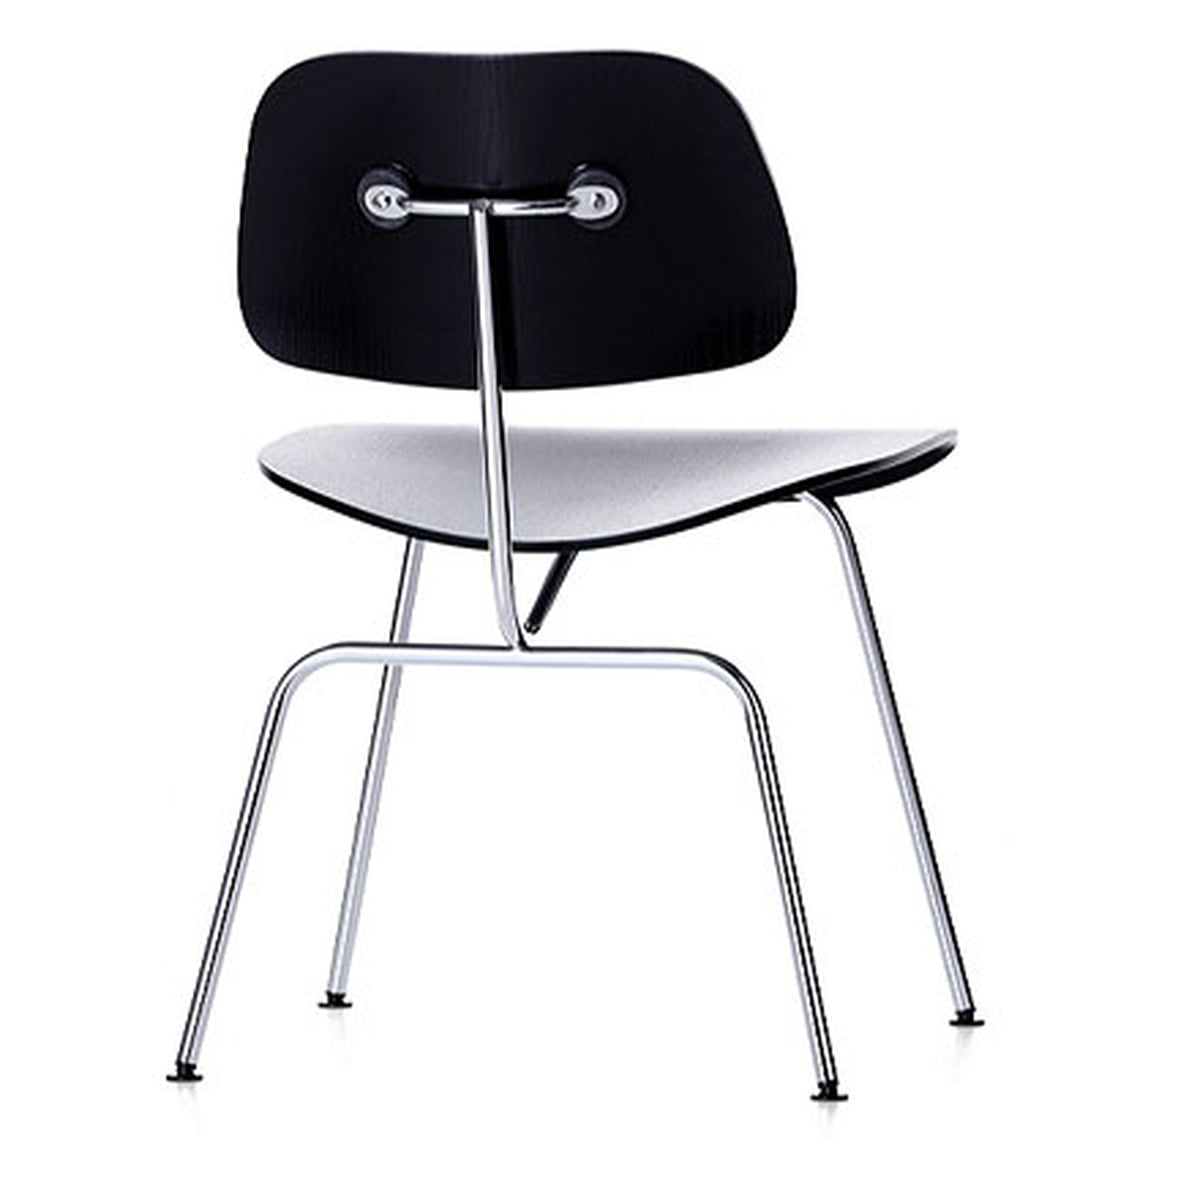 Plywood Group DCM Chair